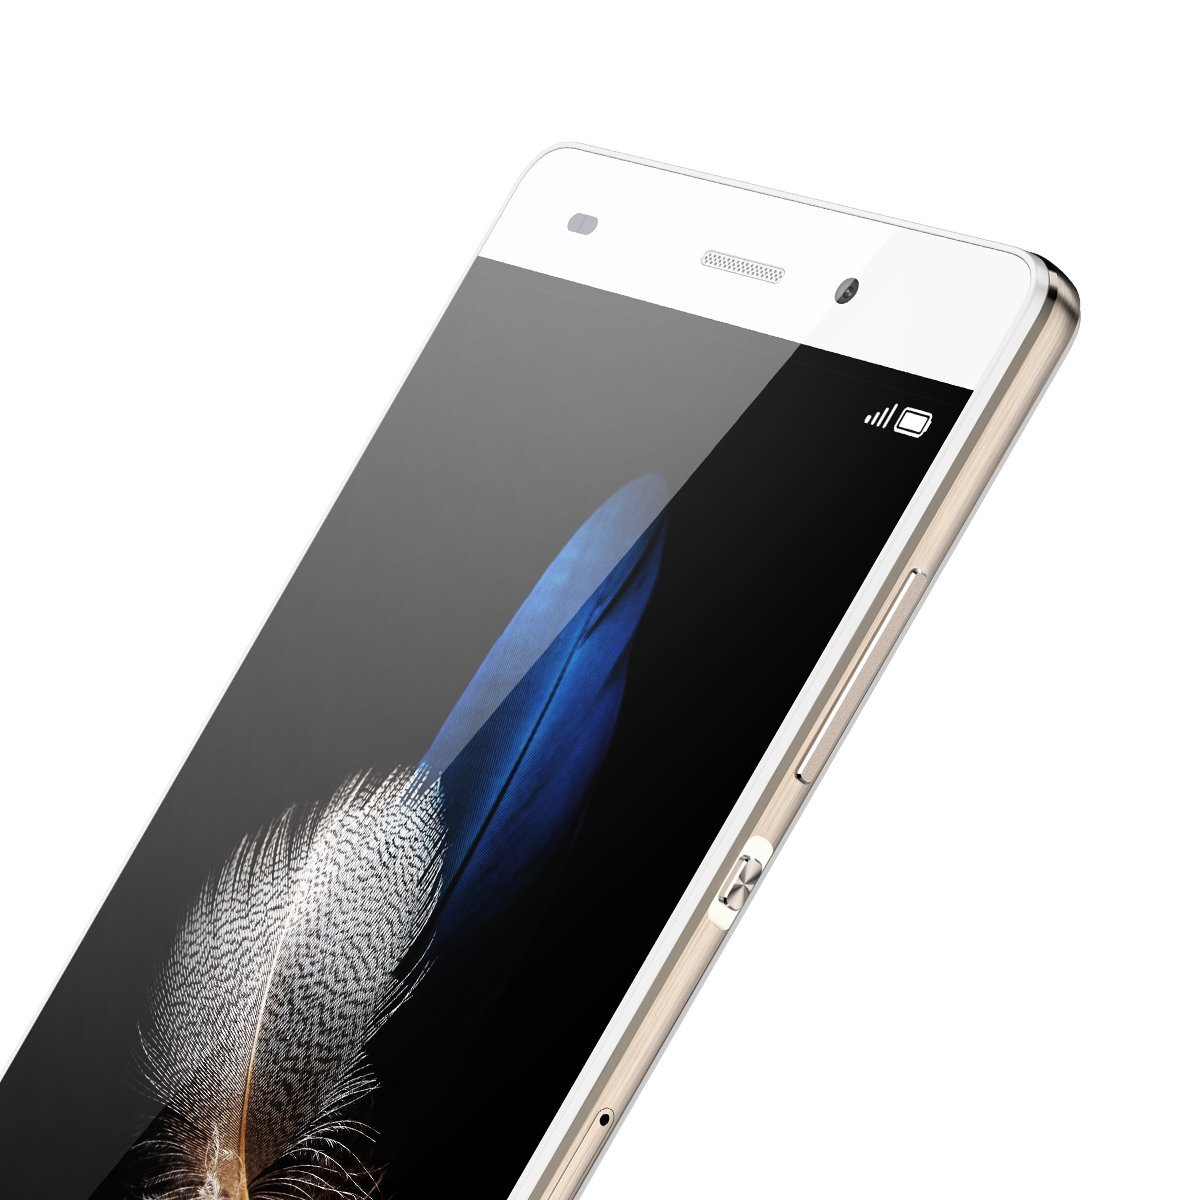 huawei p8 lite white. amazon.com: huawei p8 lite us version- 5 unlocked android 4g lte smartphone - octa core 1.5ghz, dual sim, gorilla glass, 13mp camera white (u.s.